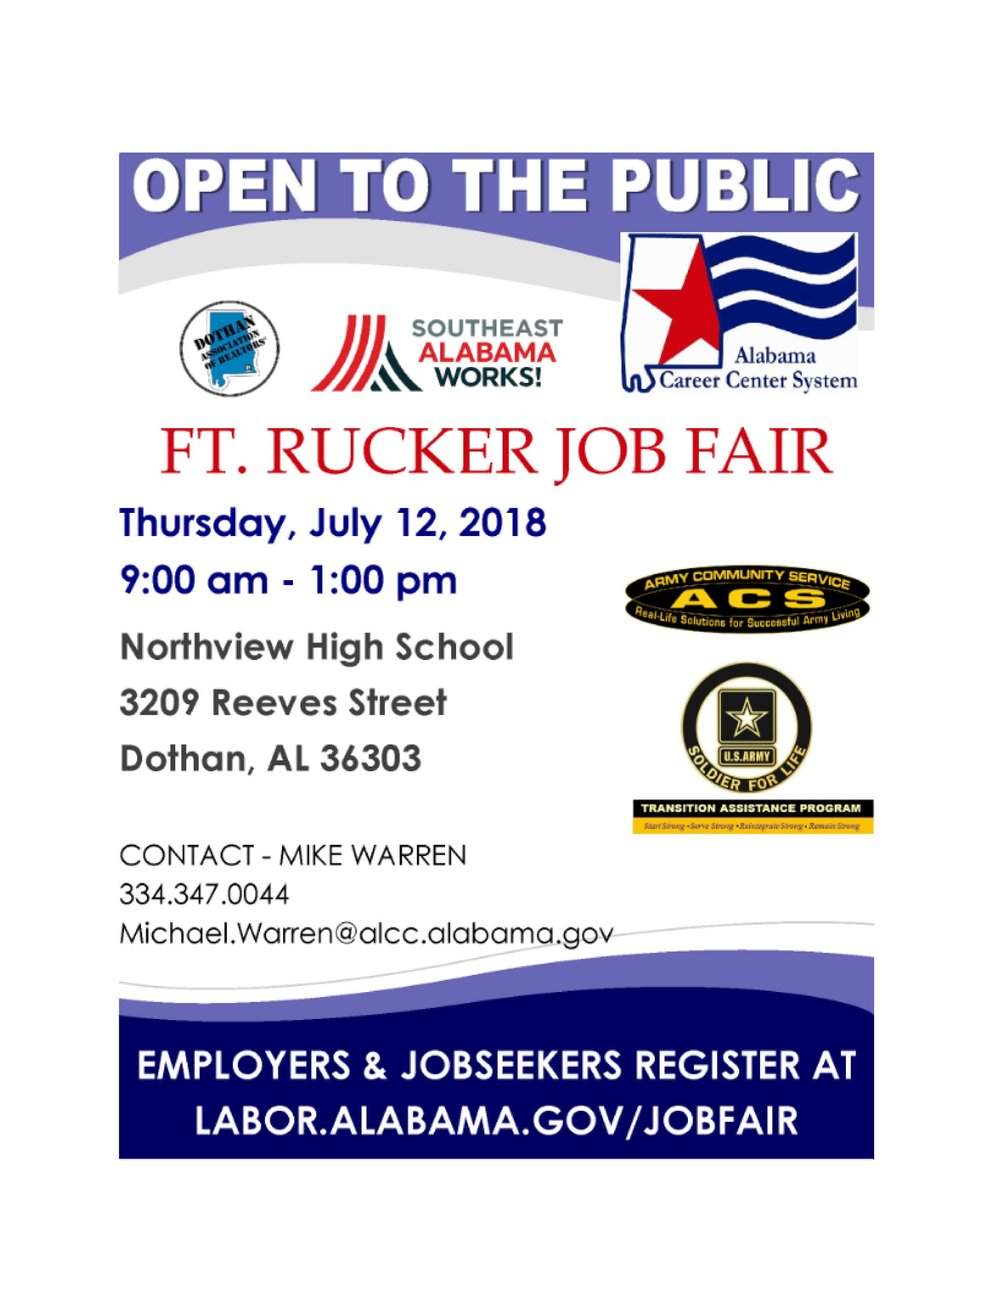 07122018 Ft. Rucker Job Fair flier.jpg